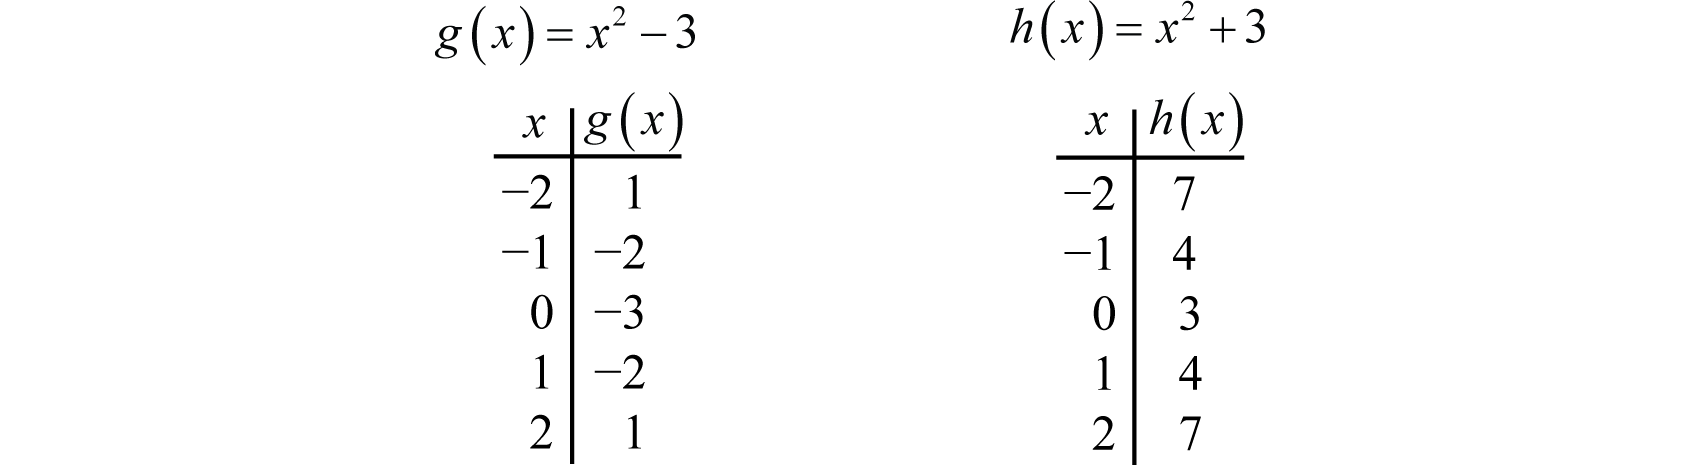 Using Transformations To Graph Functions